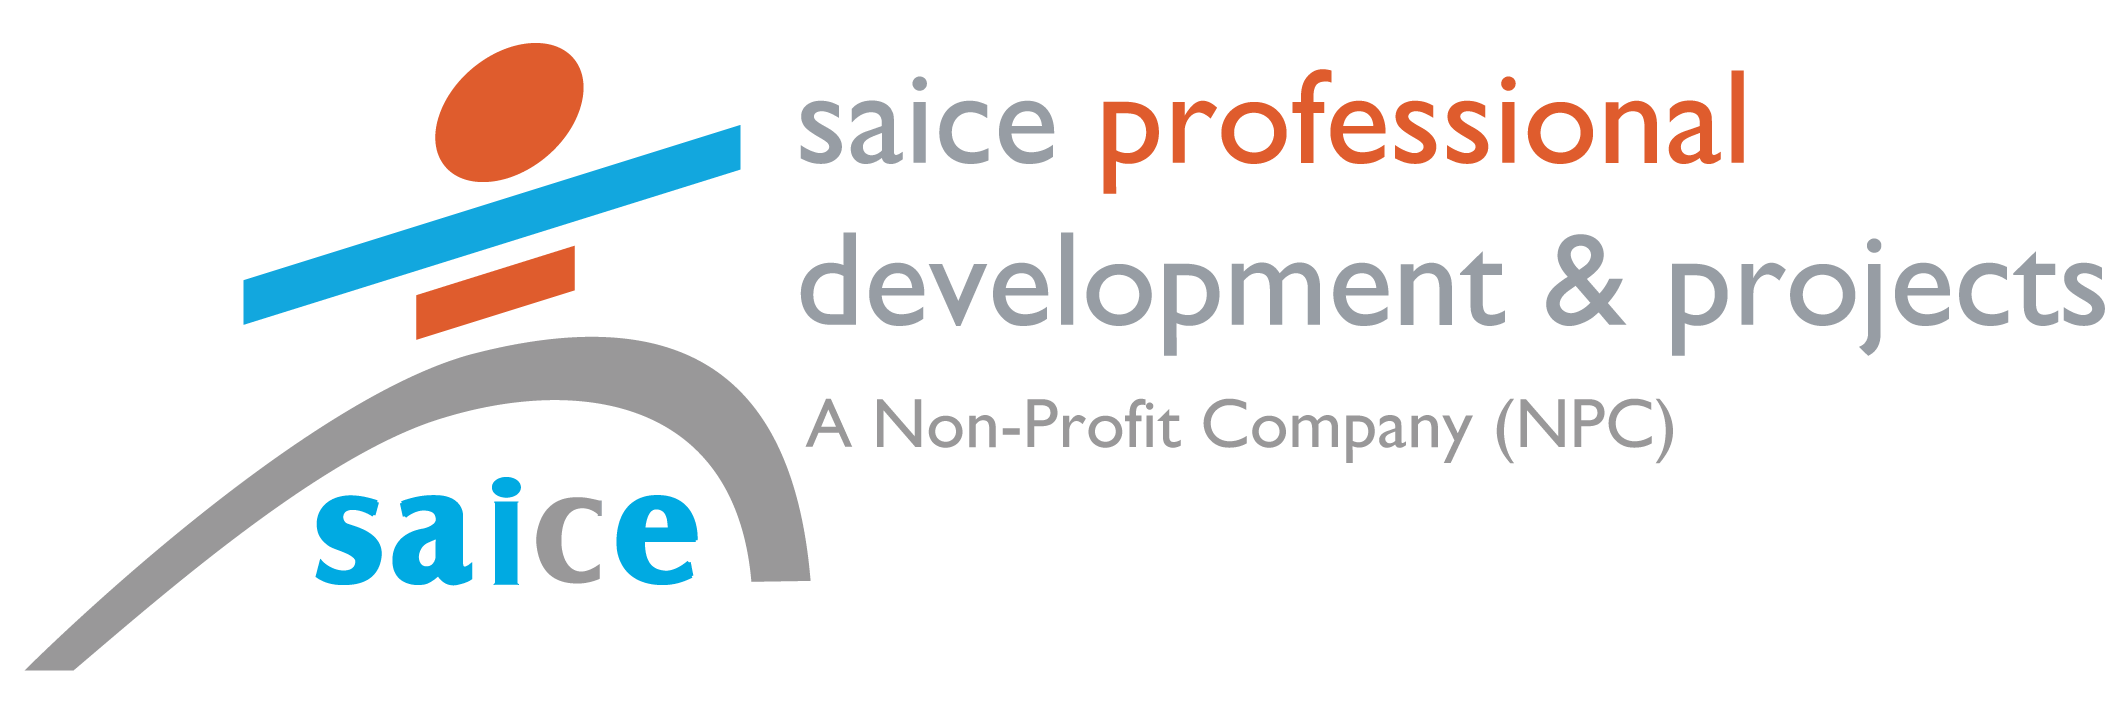 SAICE Professional Developments and Projects